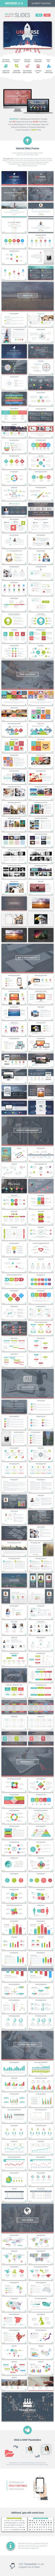 UNIVERSE - Multipurpose PowerPoint Template  #office #mockup #interactive • Click here to download ! http://graphicriver.net/item/universe-multipurpose-powerpoint-template/11744654?ref=pxcr